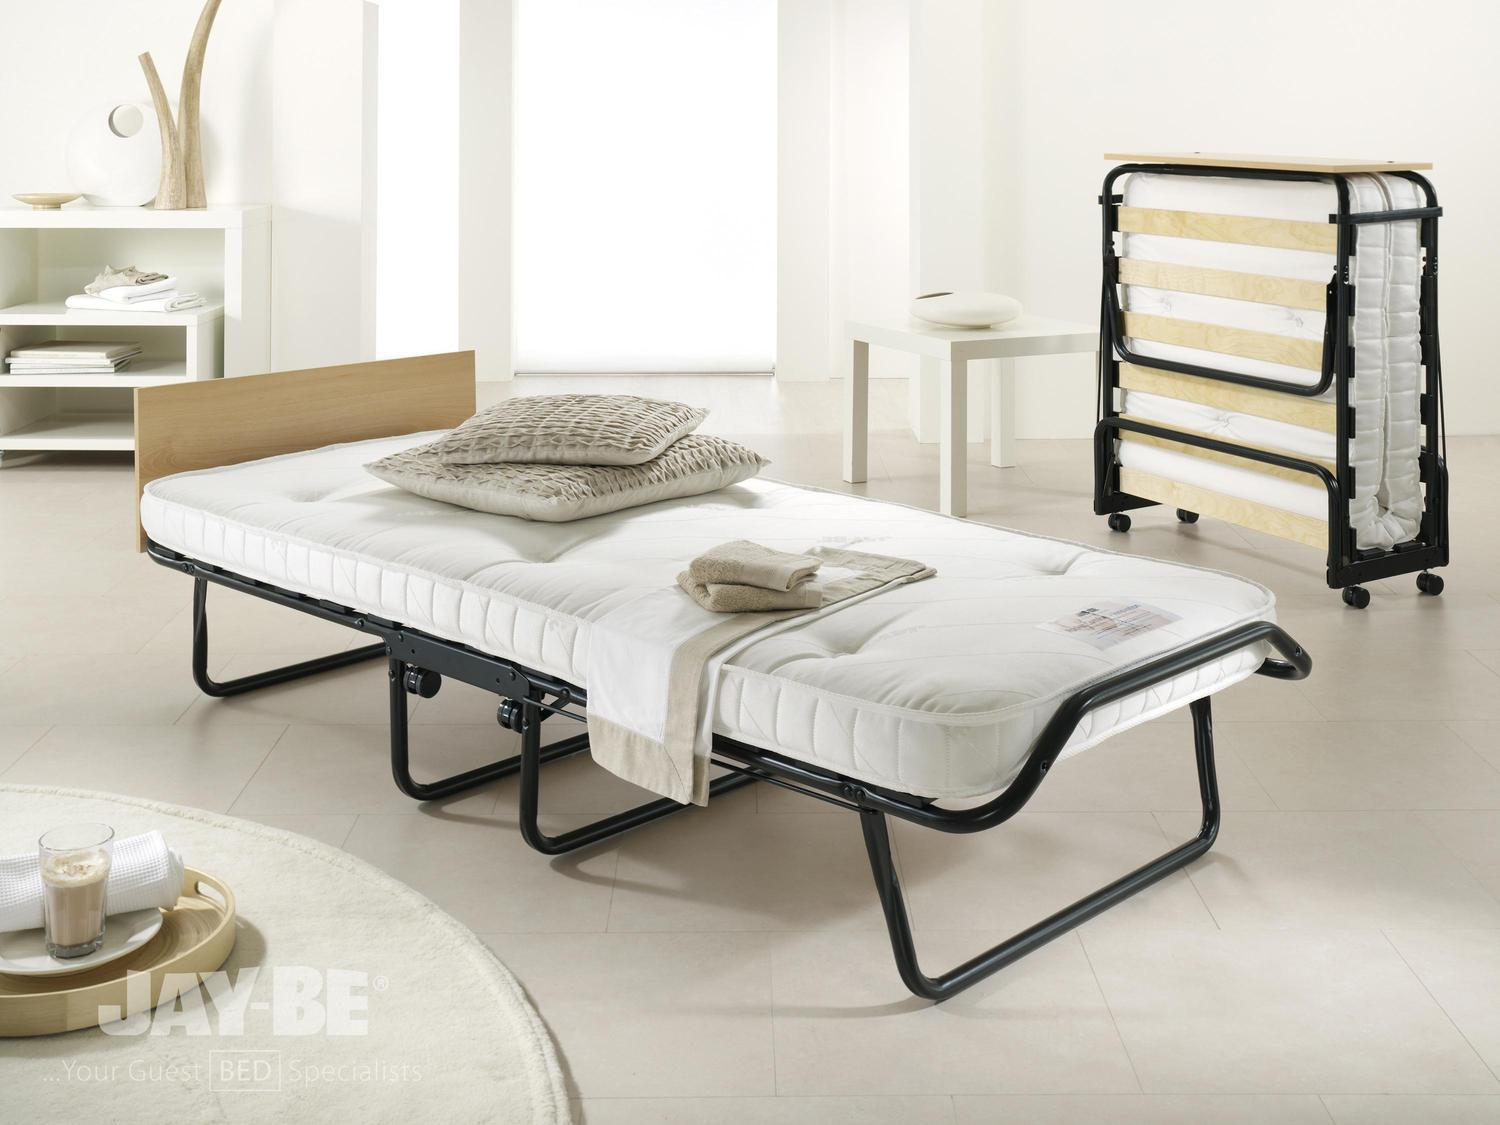 10 Best Sleeping Cots Reviewed  Rated in 2019  TheGearHunt